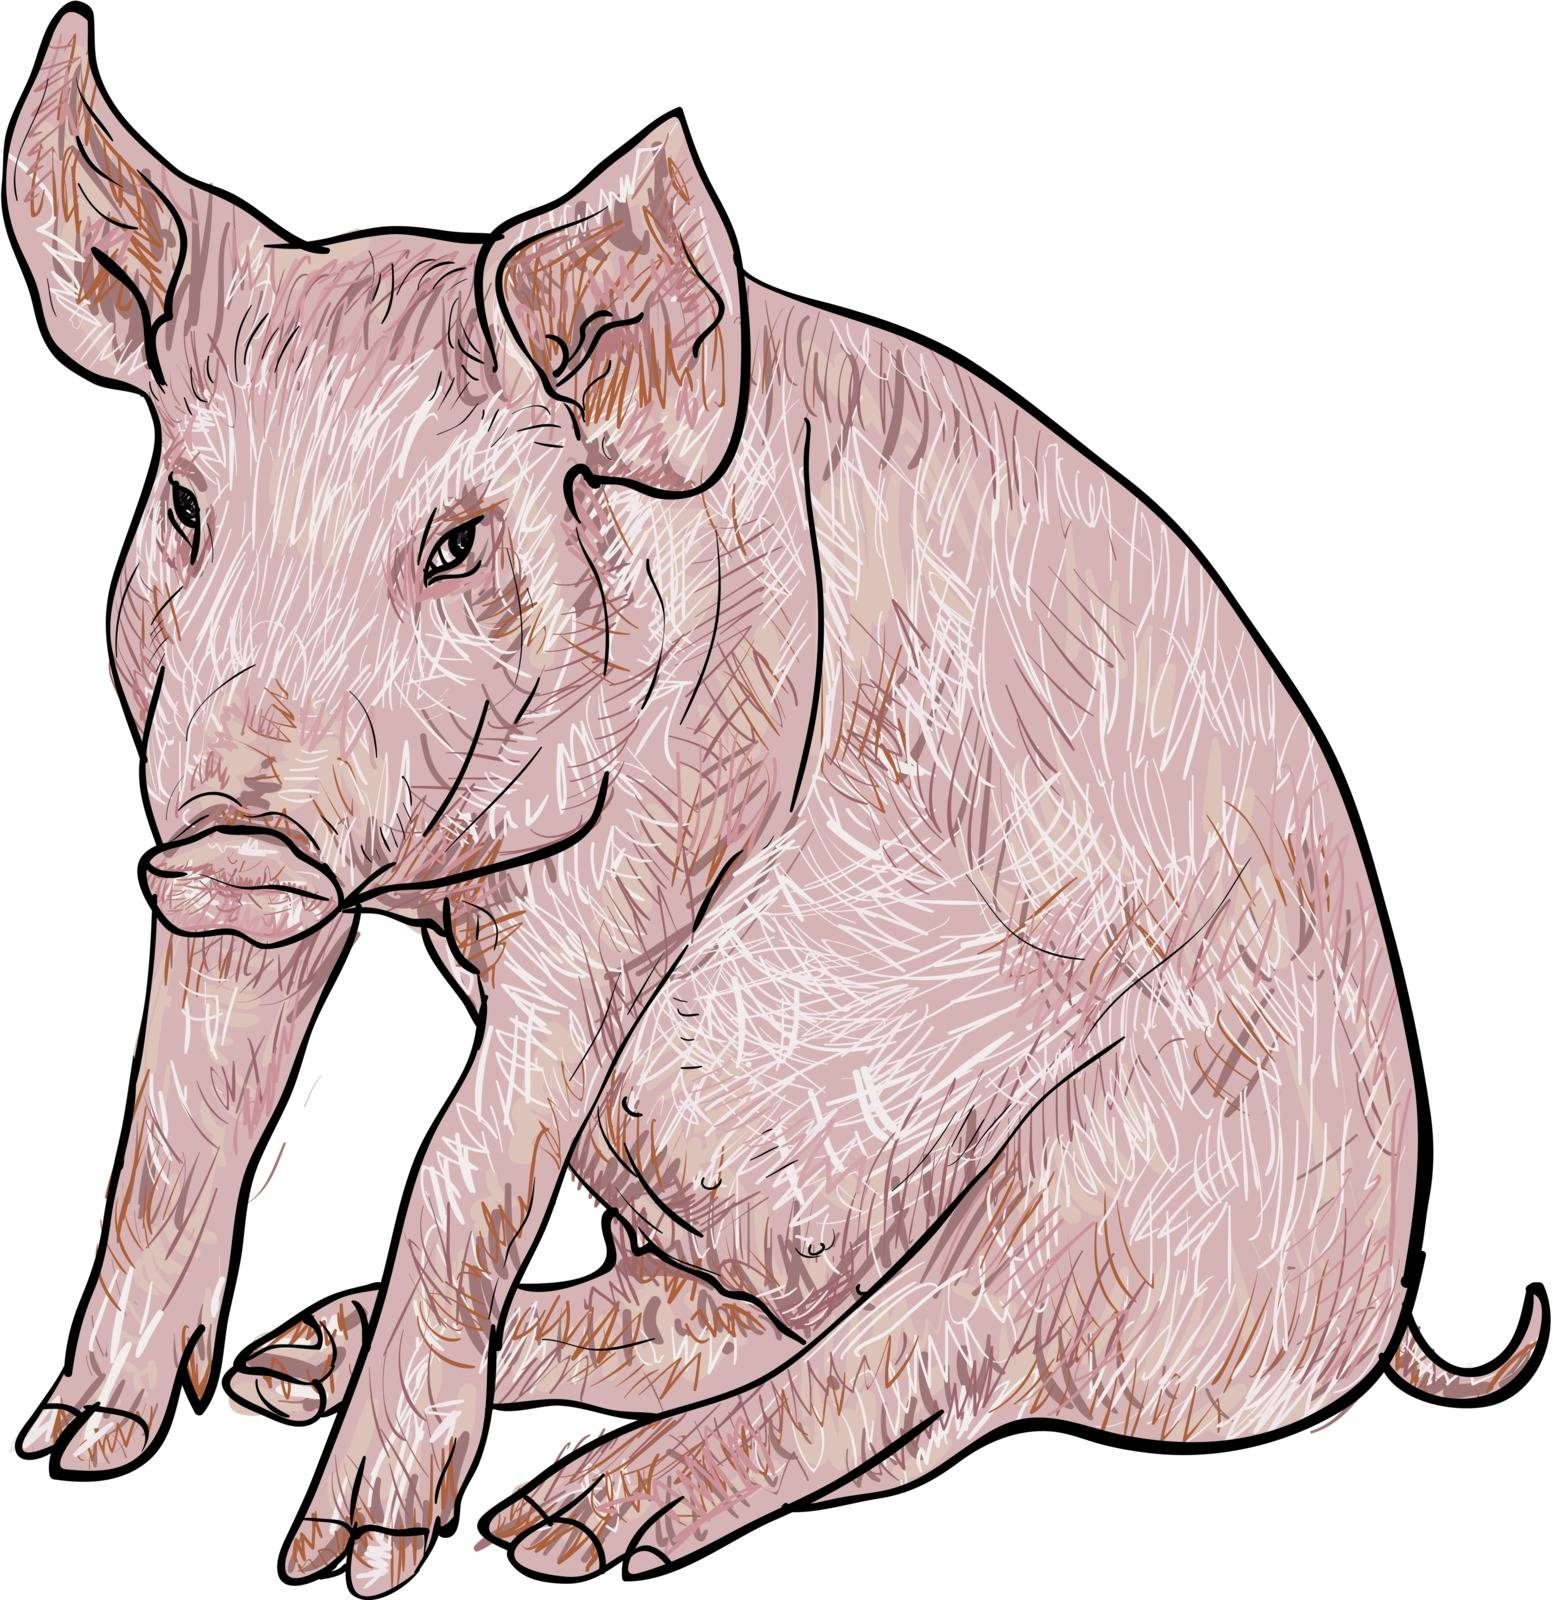 Drawing of pig on white background,vector illustration